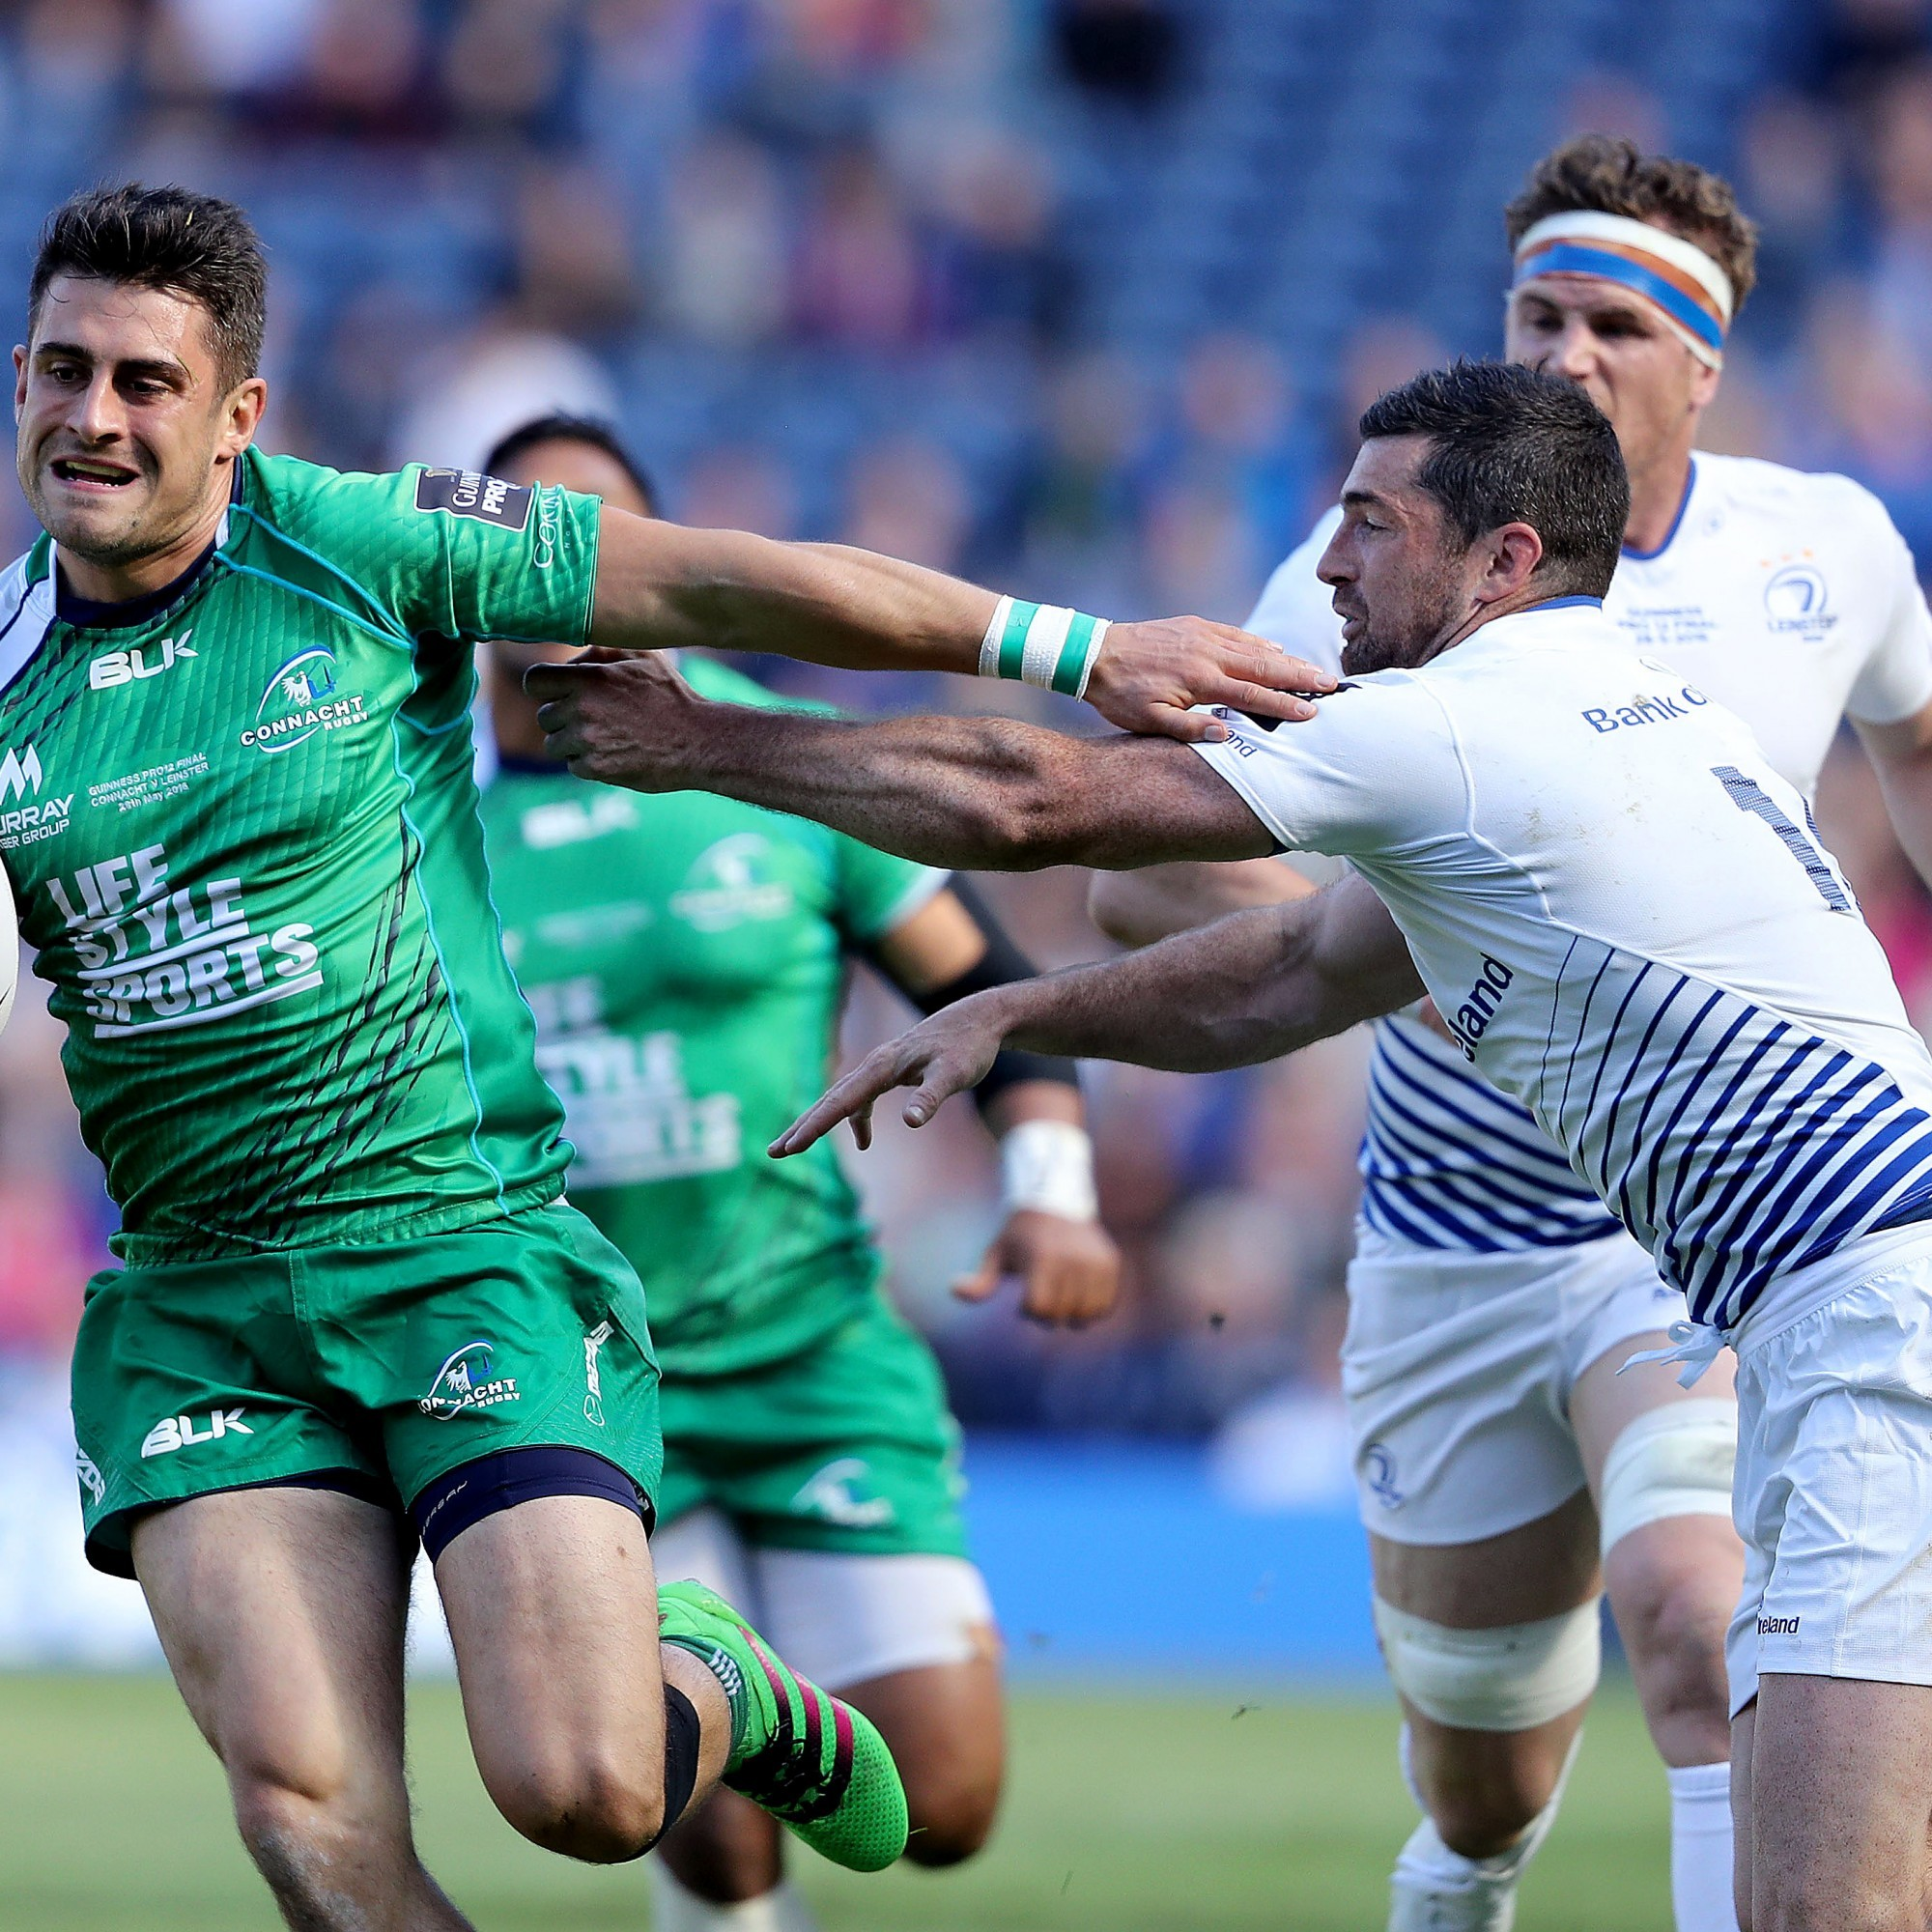 As it happened: Connacht v Leinster, Guinness Pro12 final